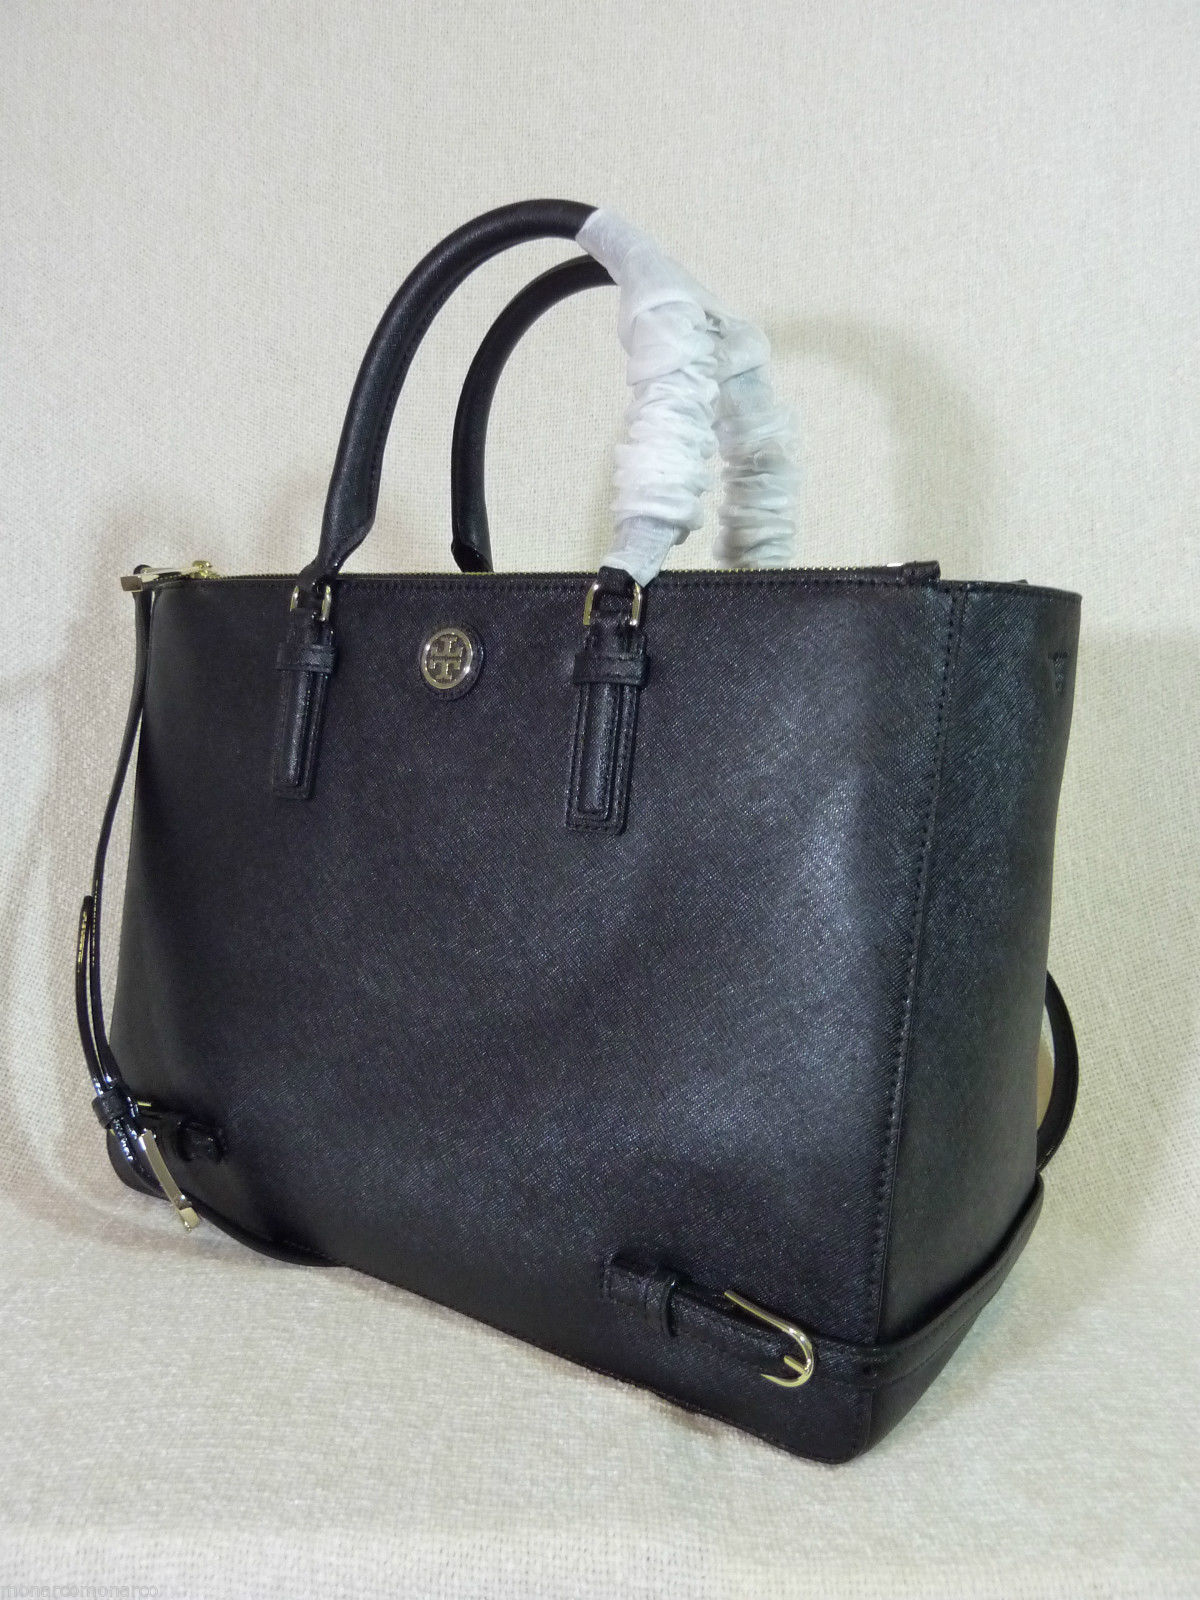 NWT Tory Burch Black Saffiano Leather Large Robinson Multi Tote + Wallet